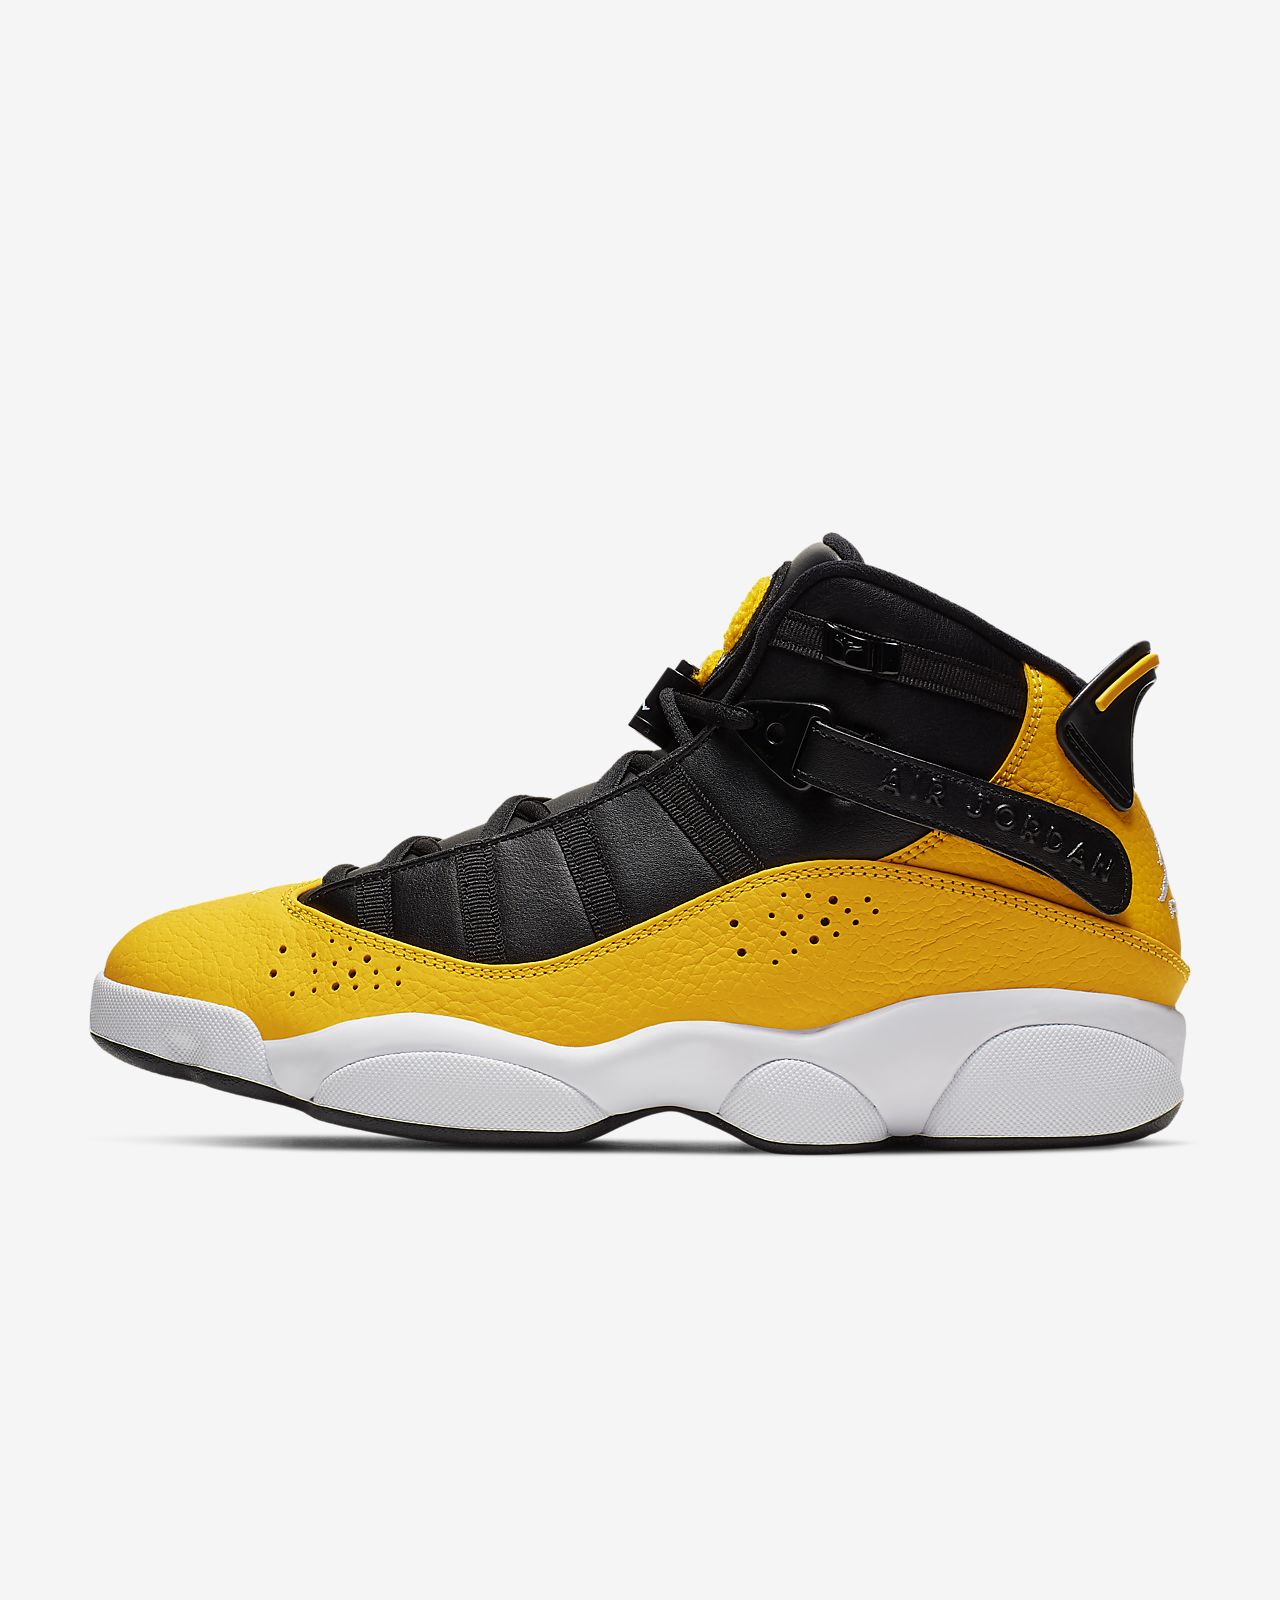 df165d39ab1 Jordan 6 Rings Men's Shoe. Nike.com GB